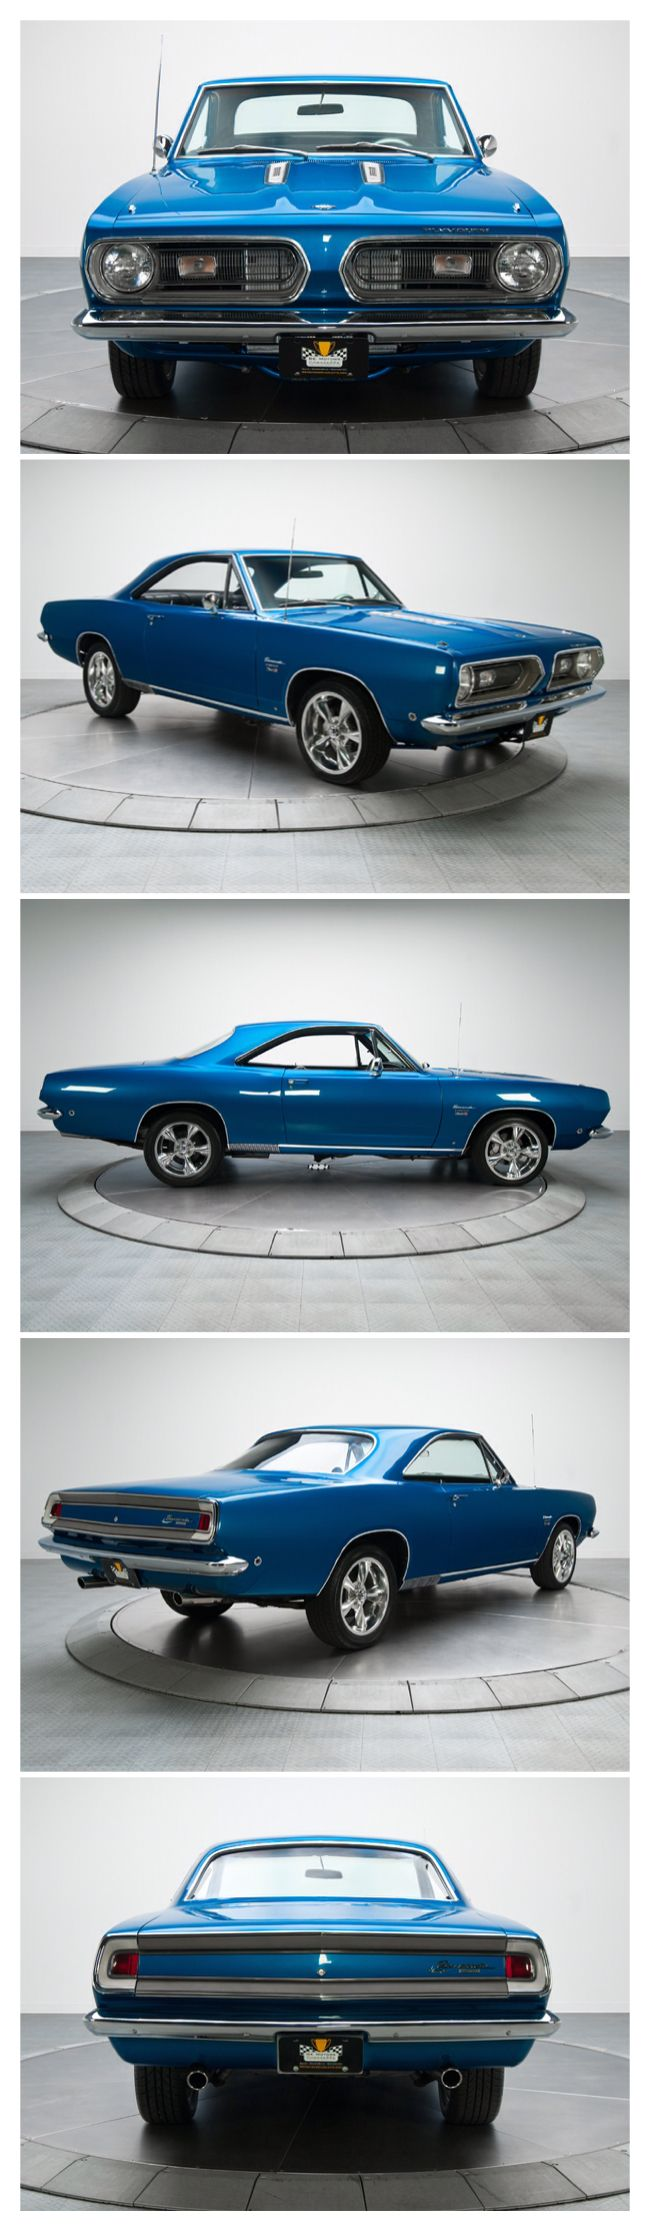 1968 Plymouth Barracuda..Re-pin...Brought to you by #CarInsurance at #HouseofInsurance in Eugene, Oregon